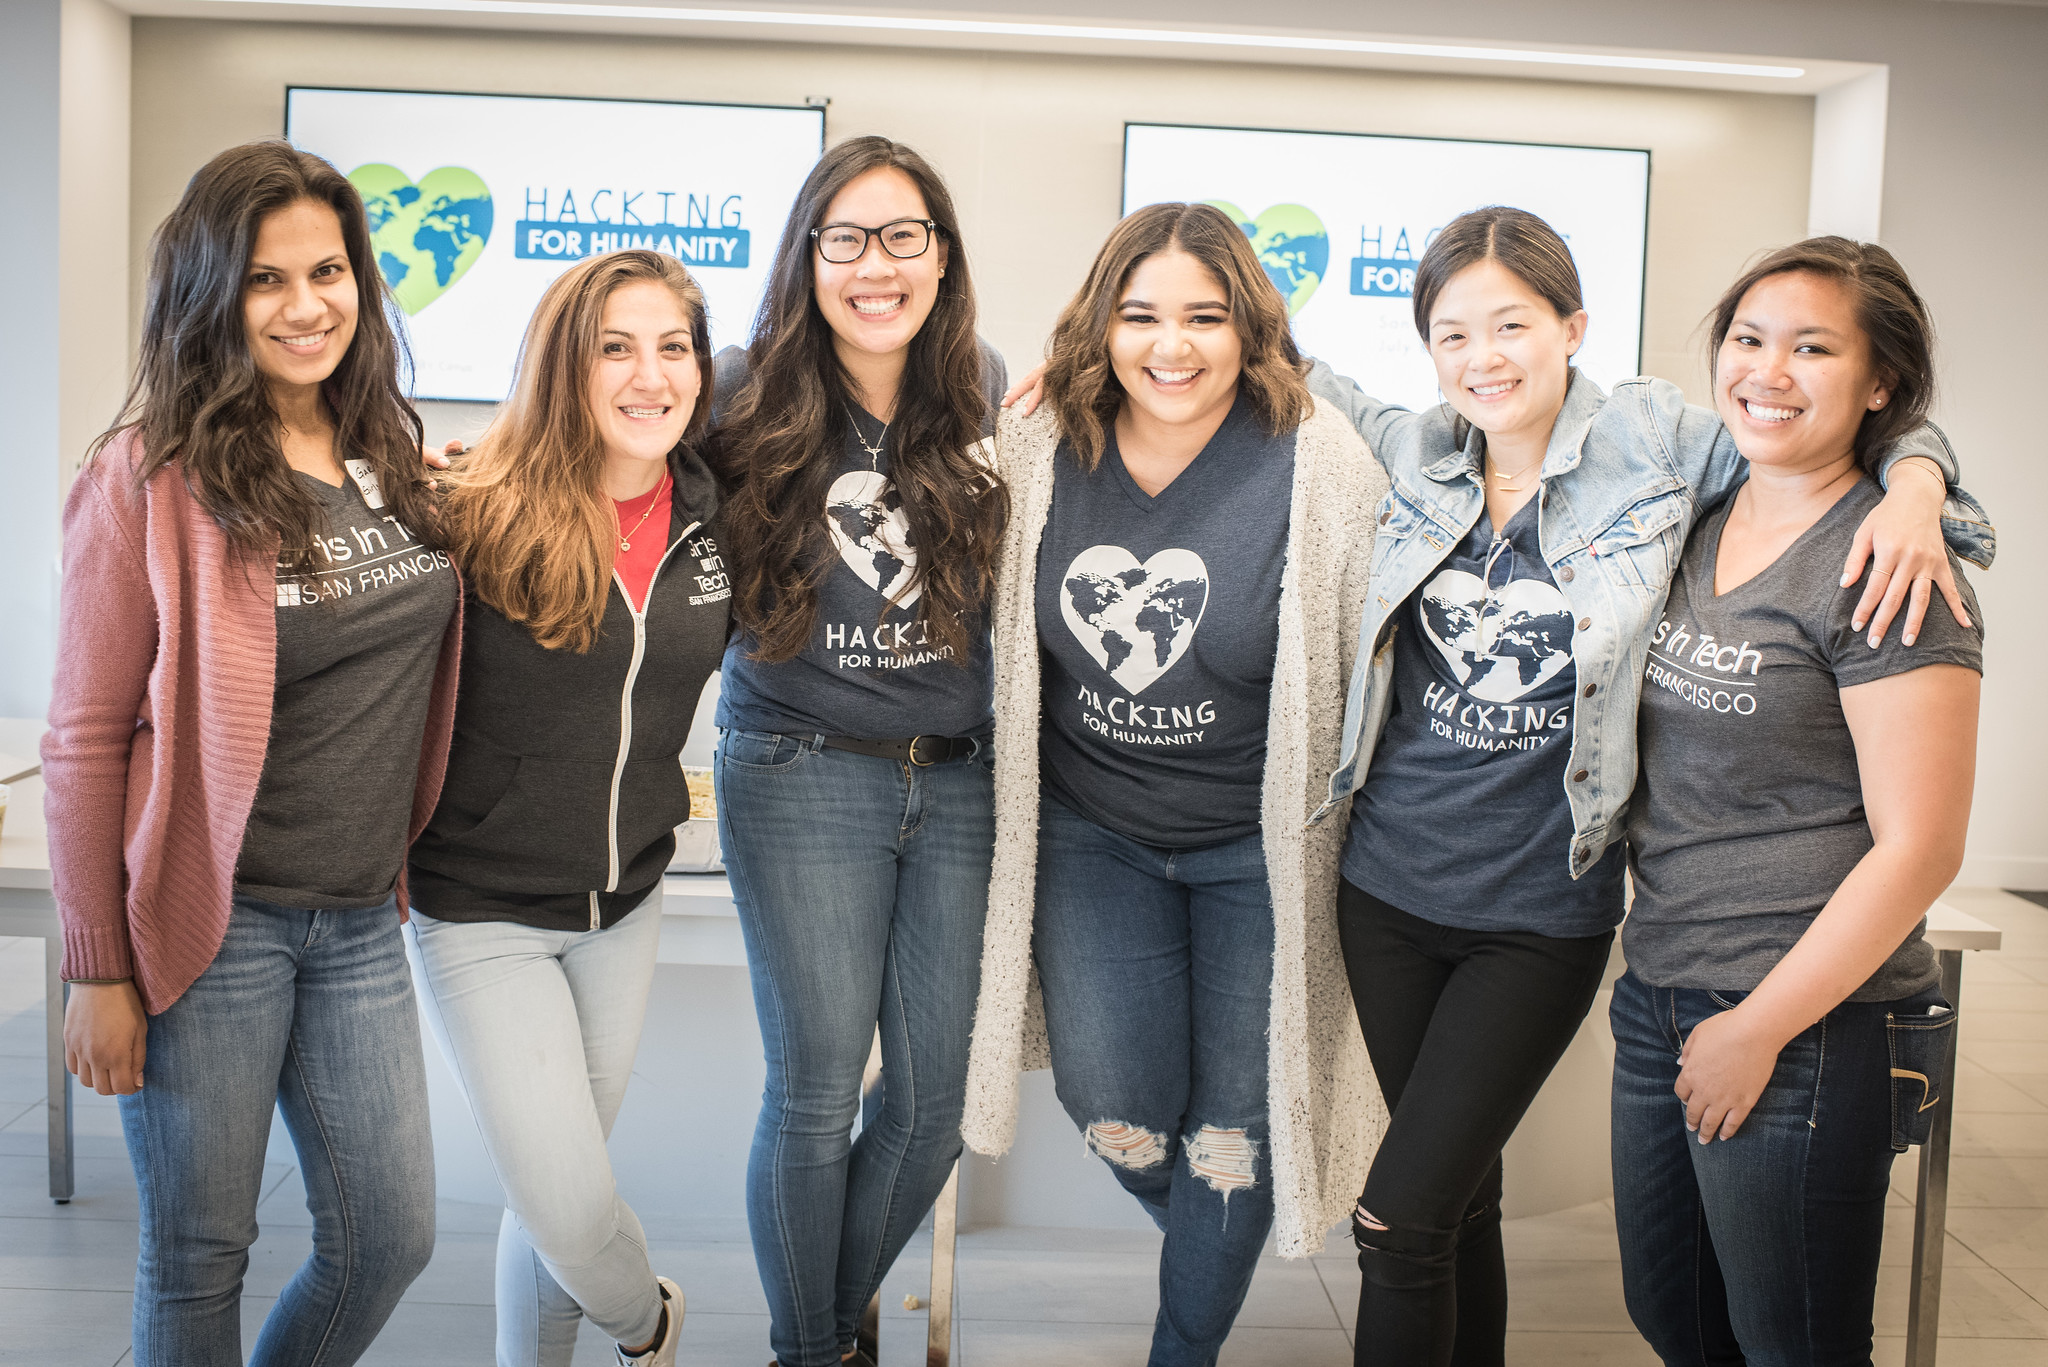 Girls in Tech - I joined the board of the San Francisco Chapter of Girls in Tech (GIT). GIT is a global non-profit focused on the engagement, education and empowerment of girls and women who are passionate about technology.